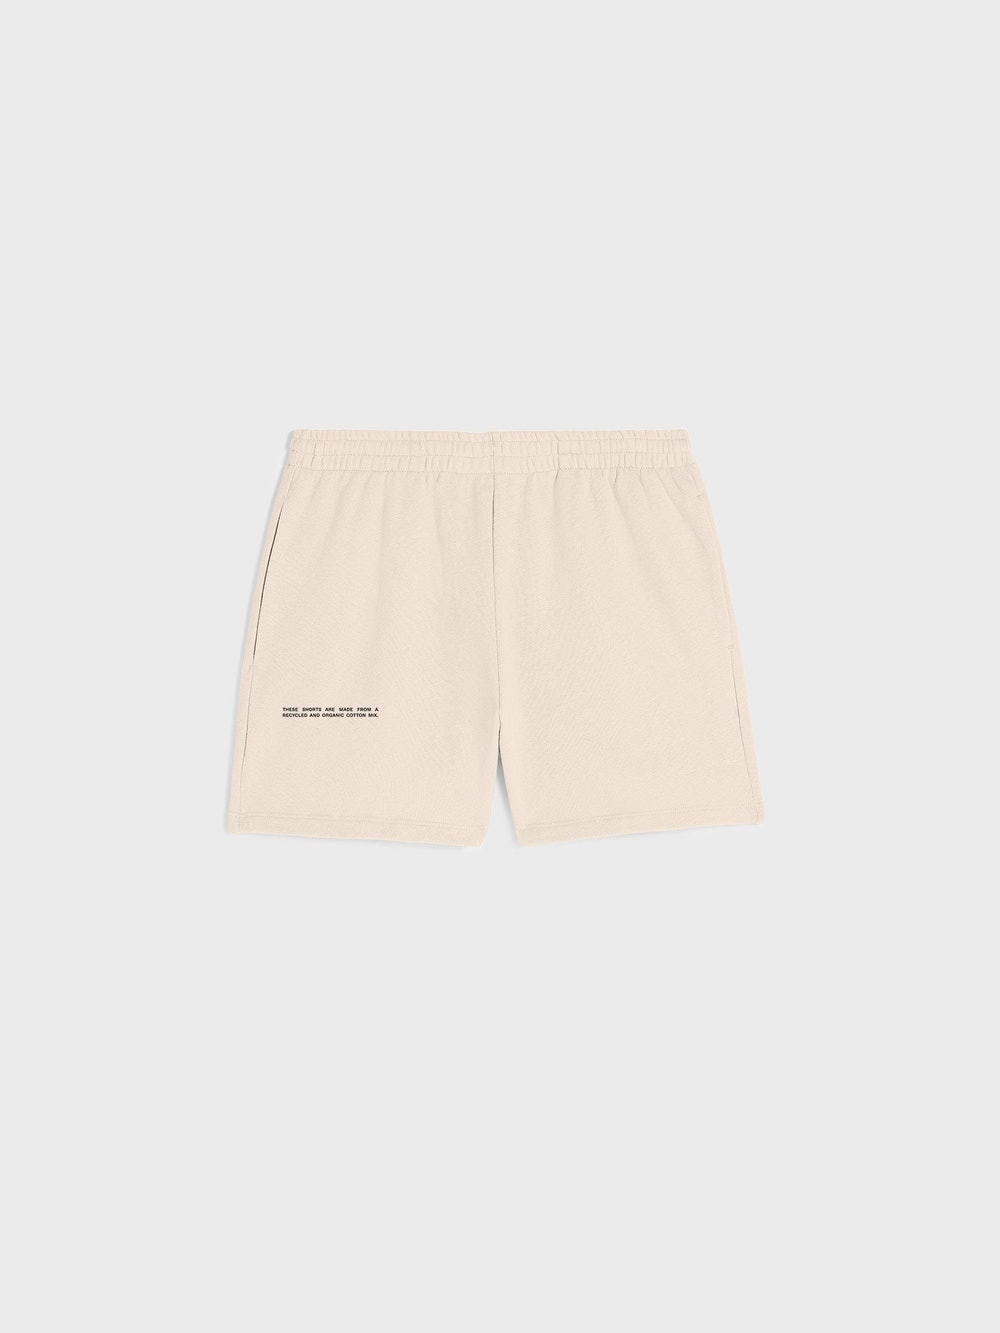 Heavyweight Recycled Cotton Shorts